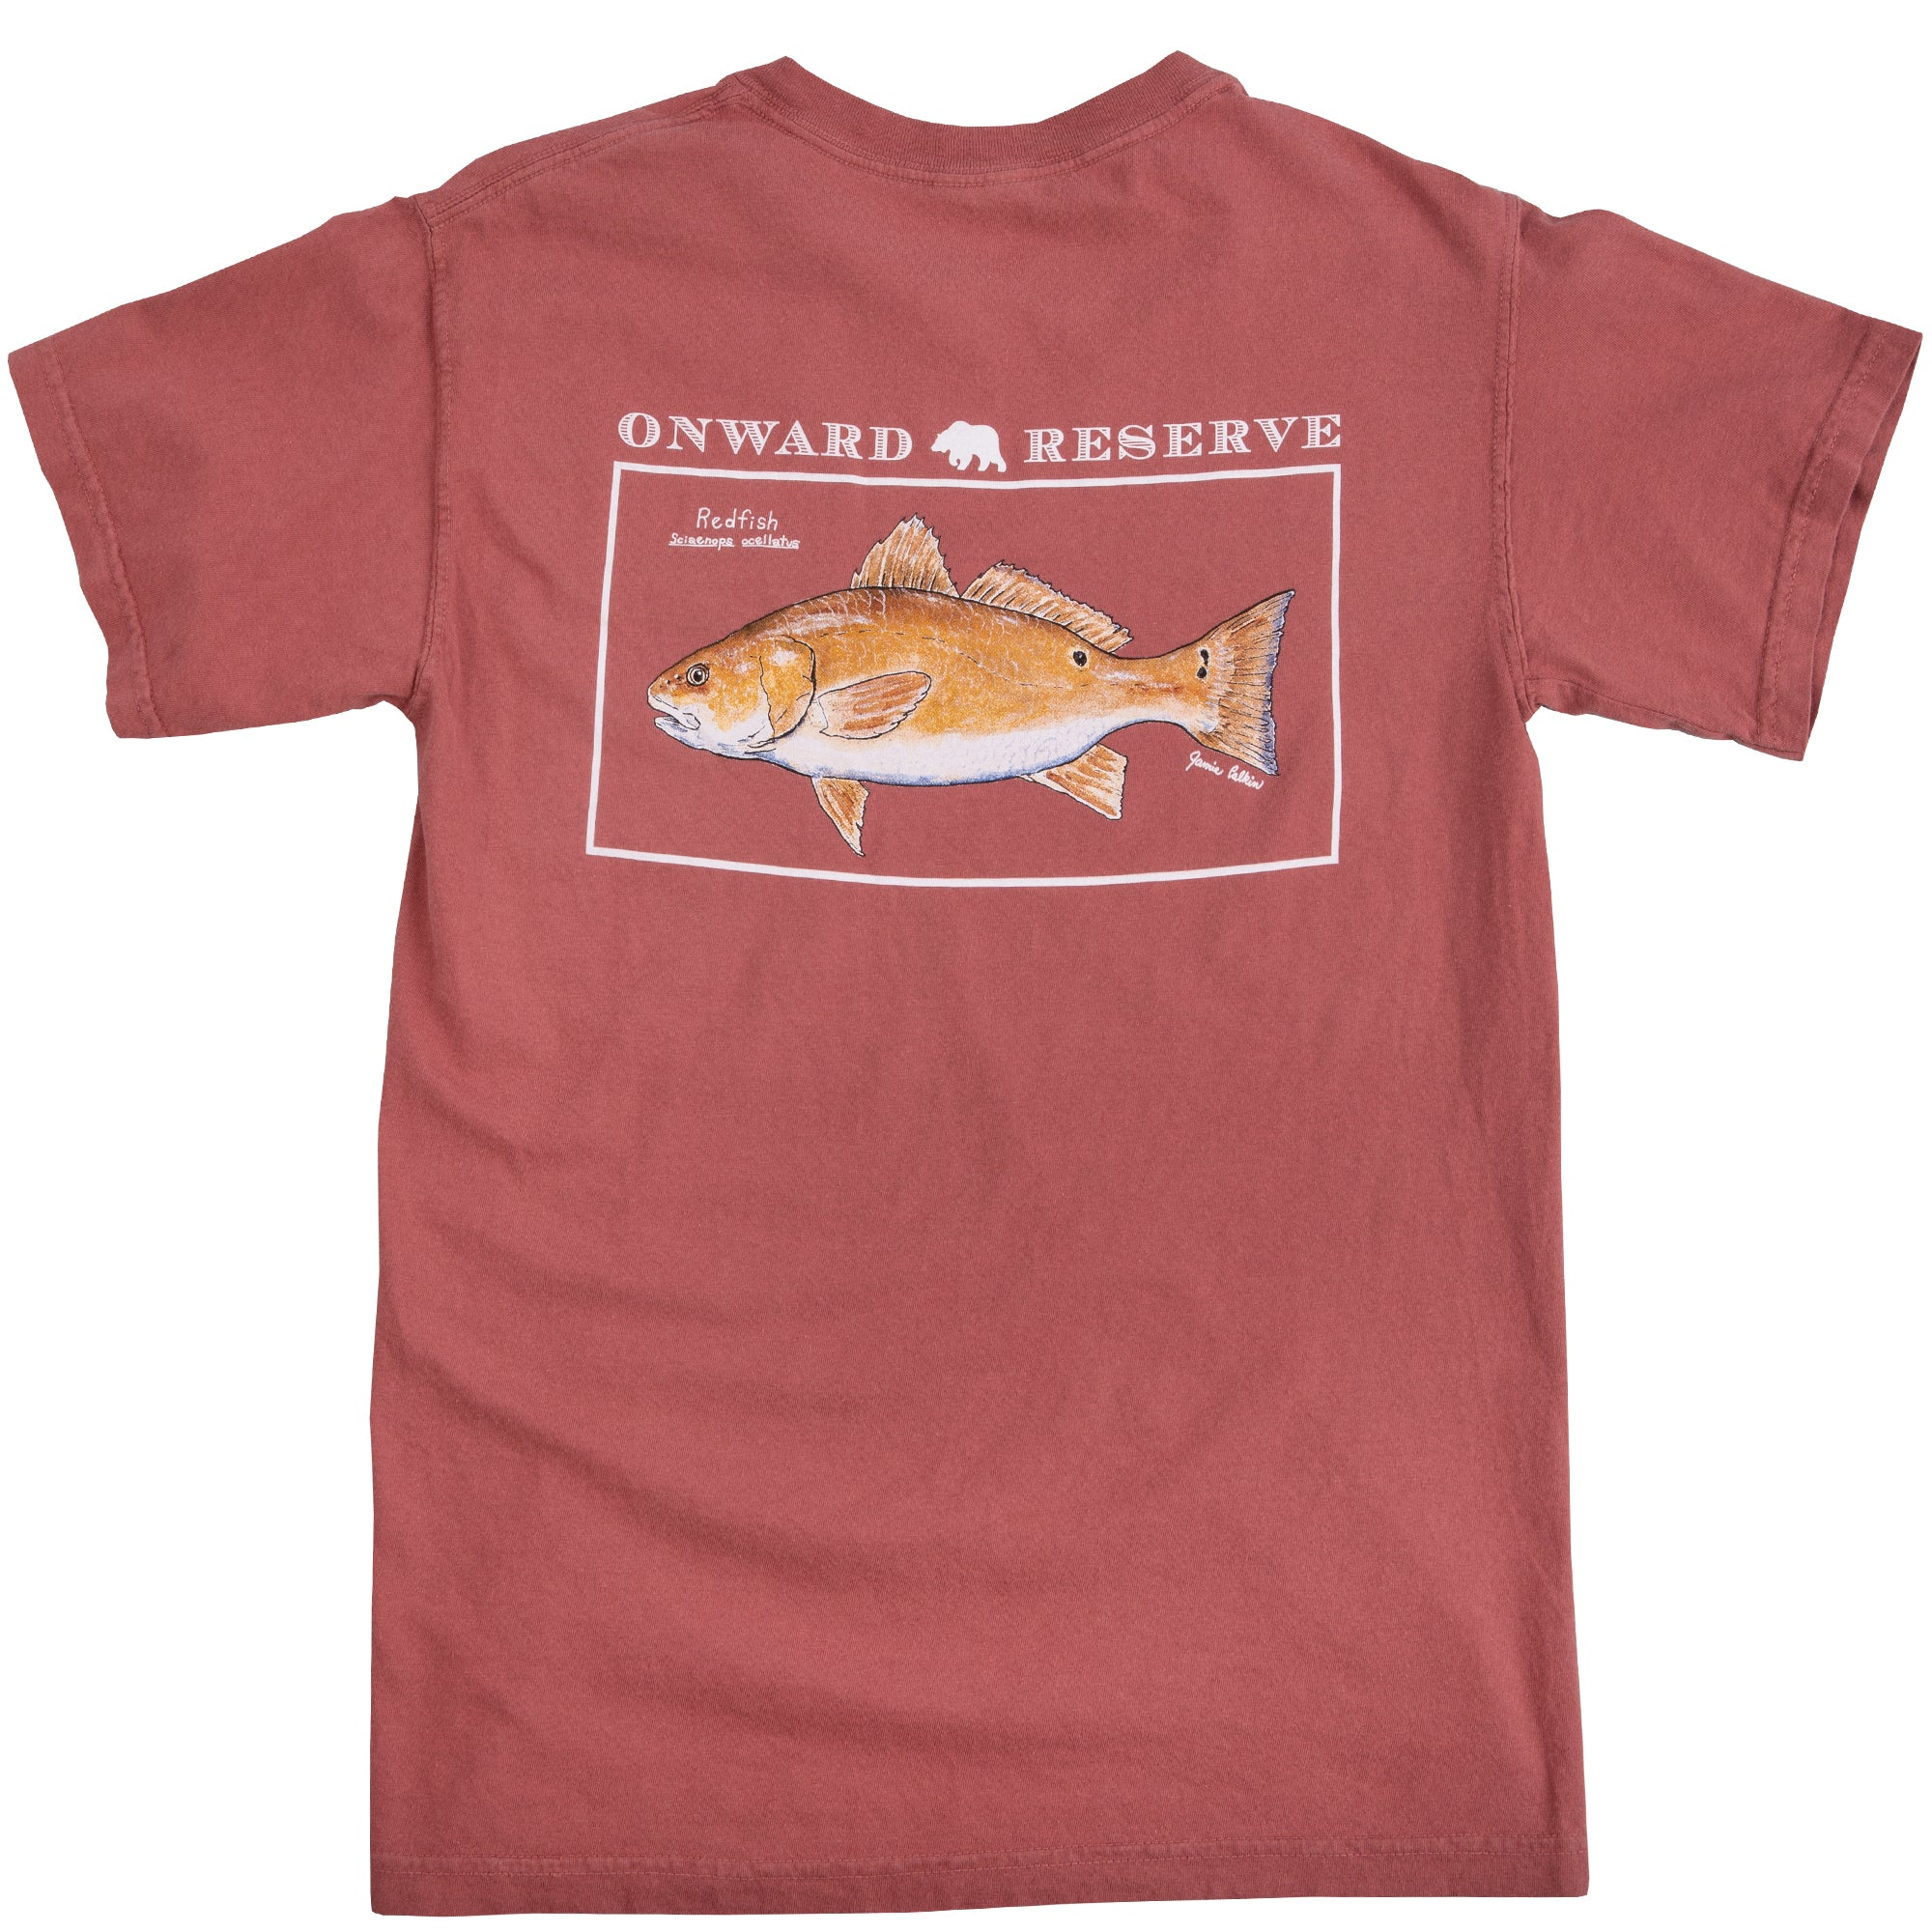 Redfish Tee - OnwardReserve